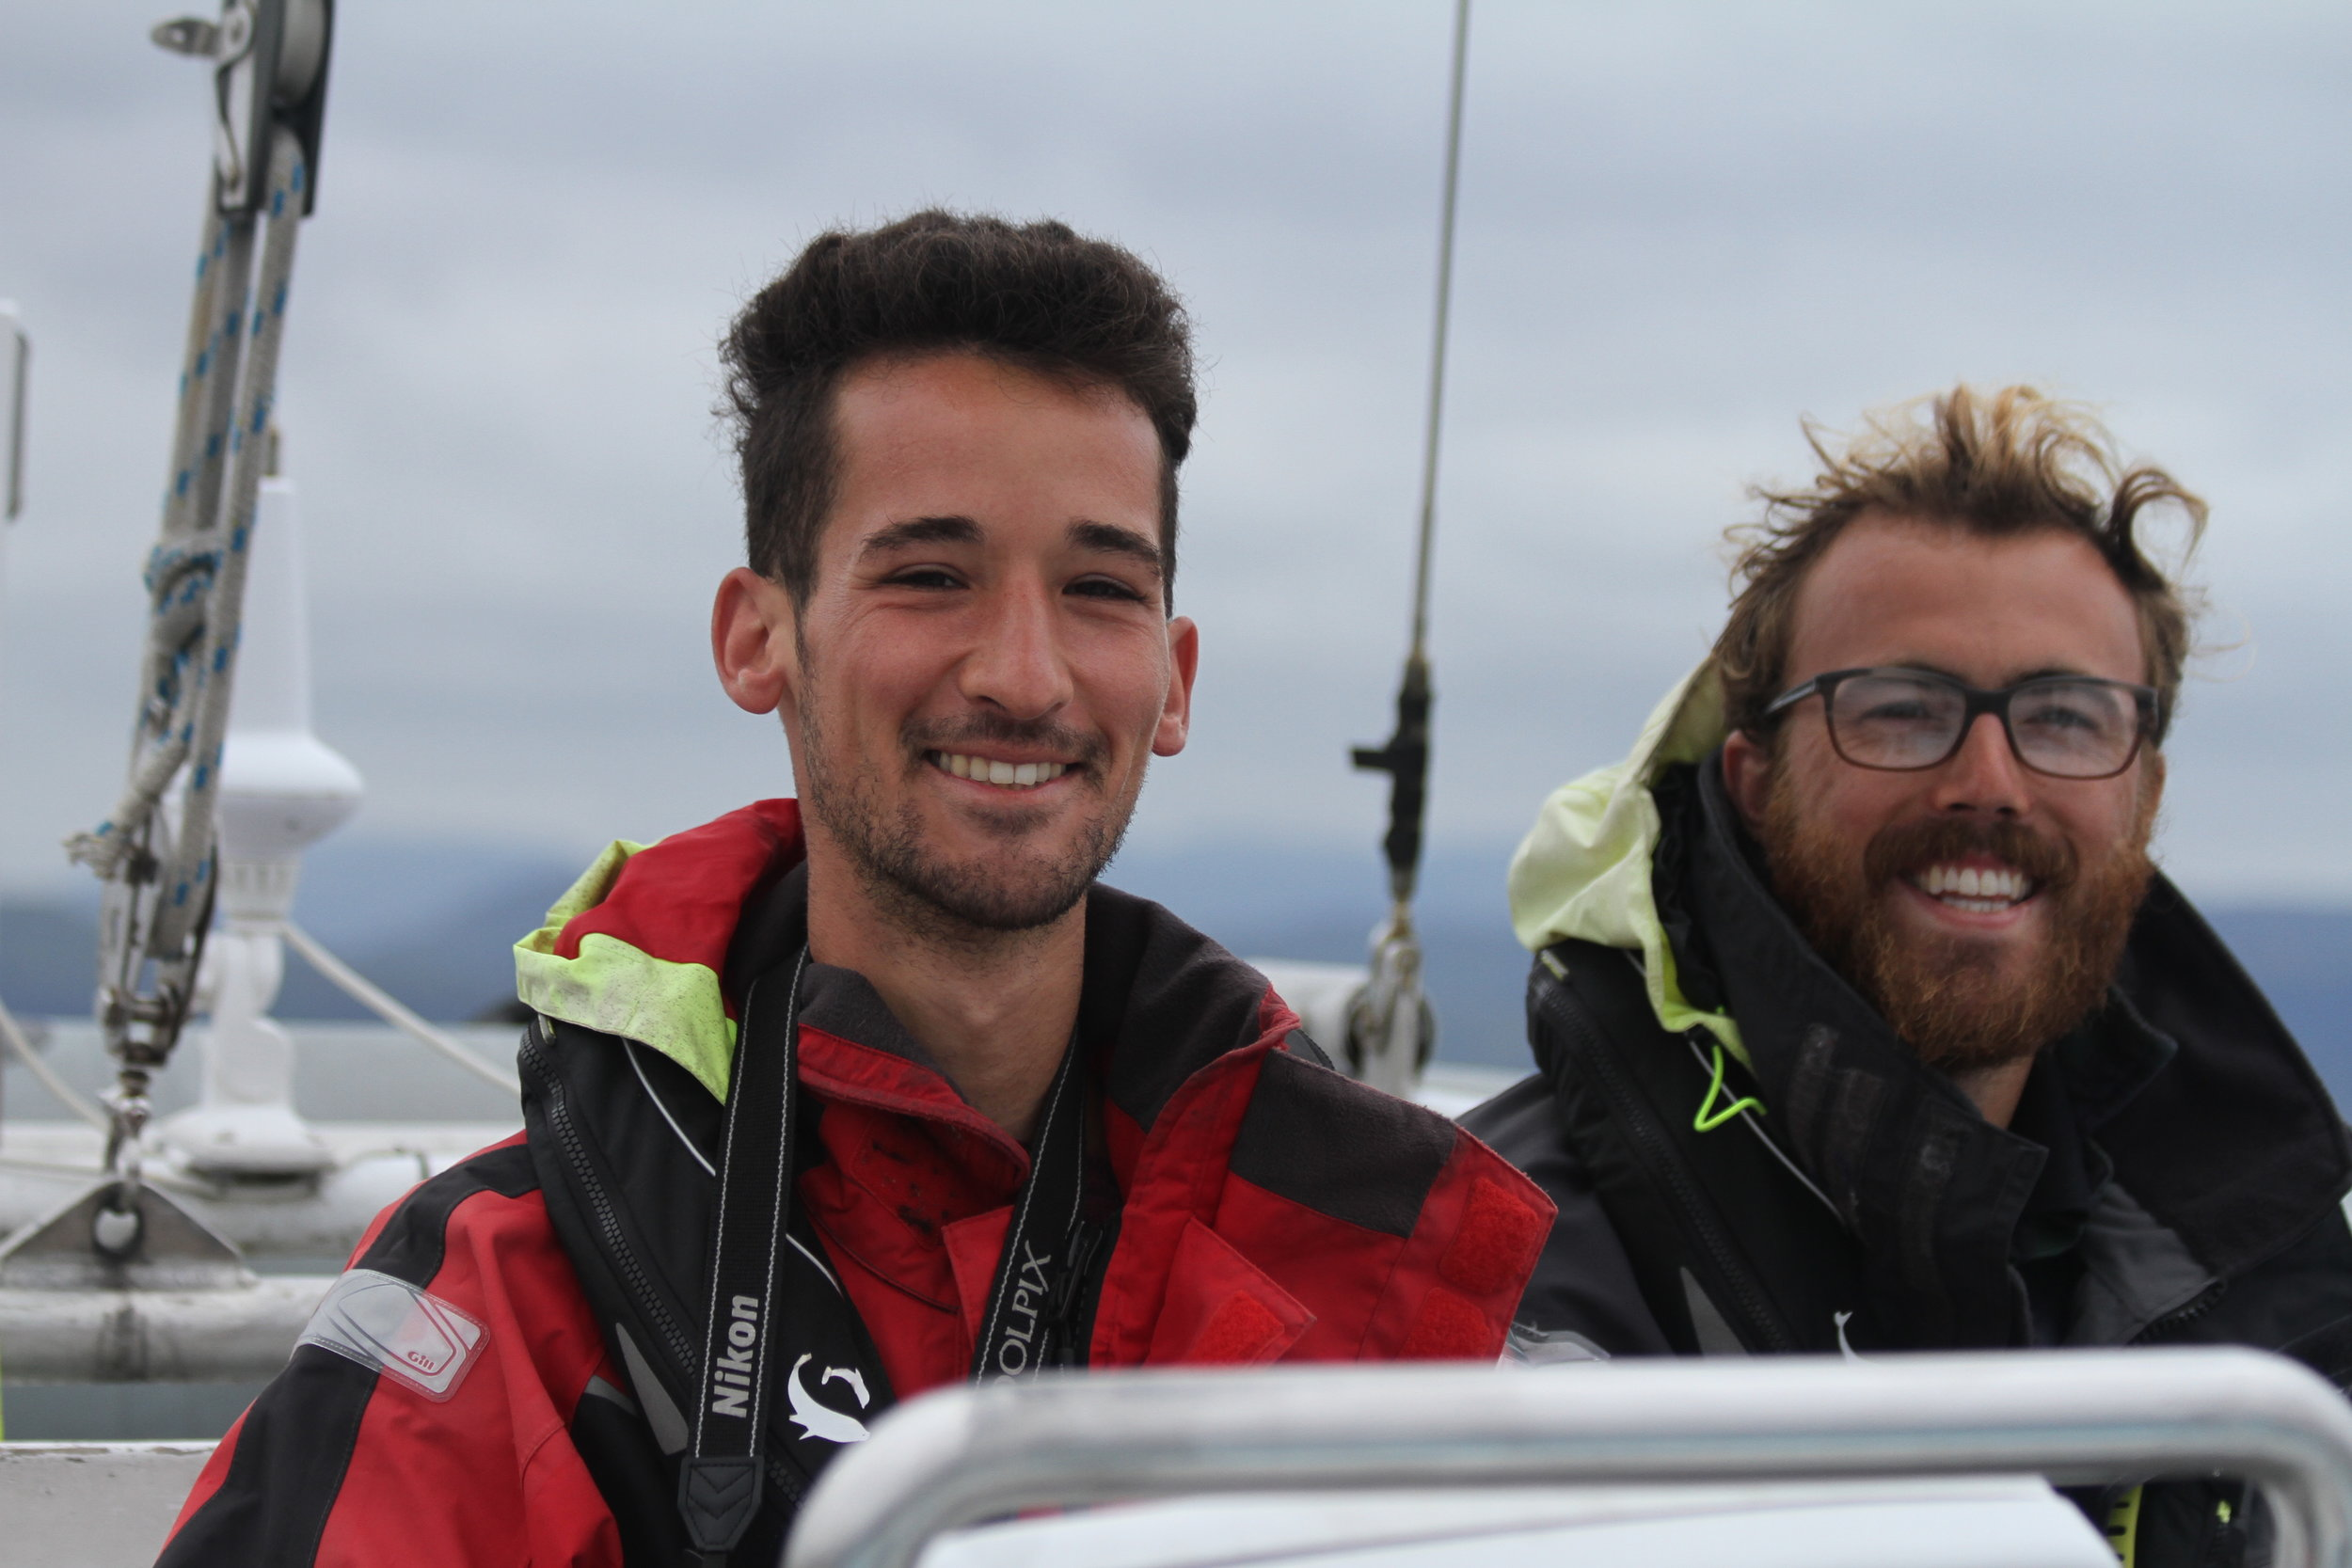 Smiles all round! Danny on board  Silurian  with relief first mate Charlie.